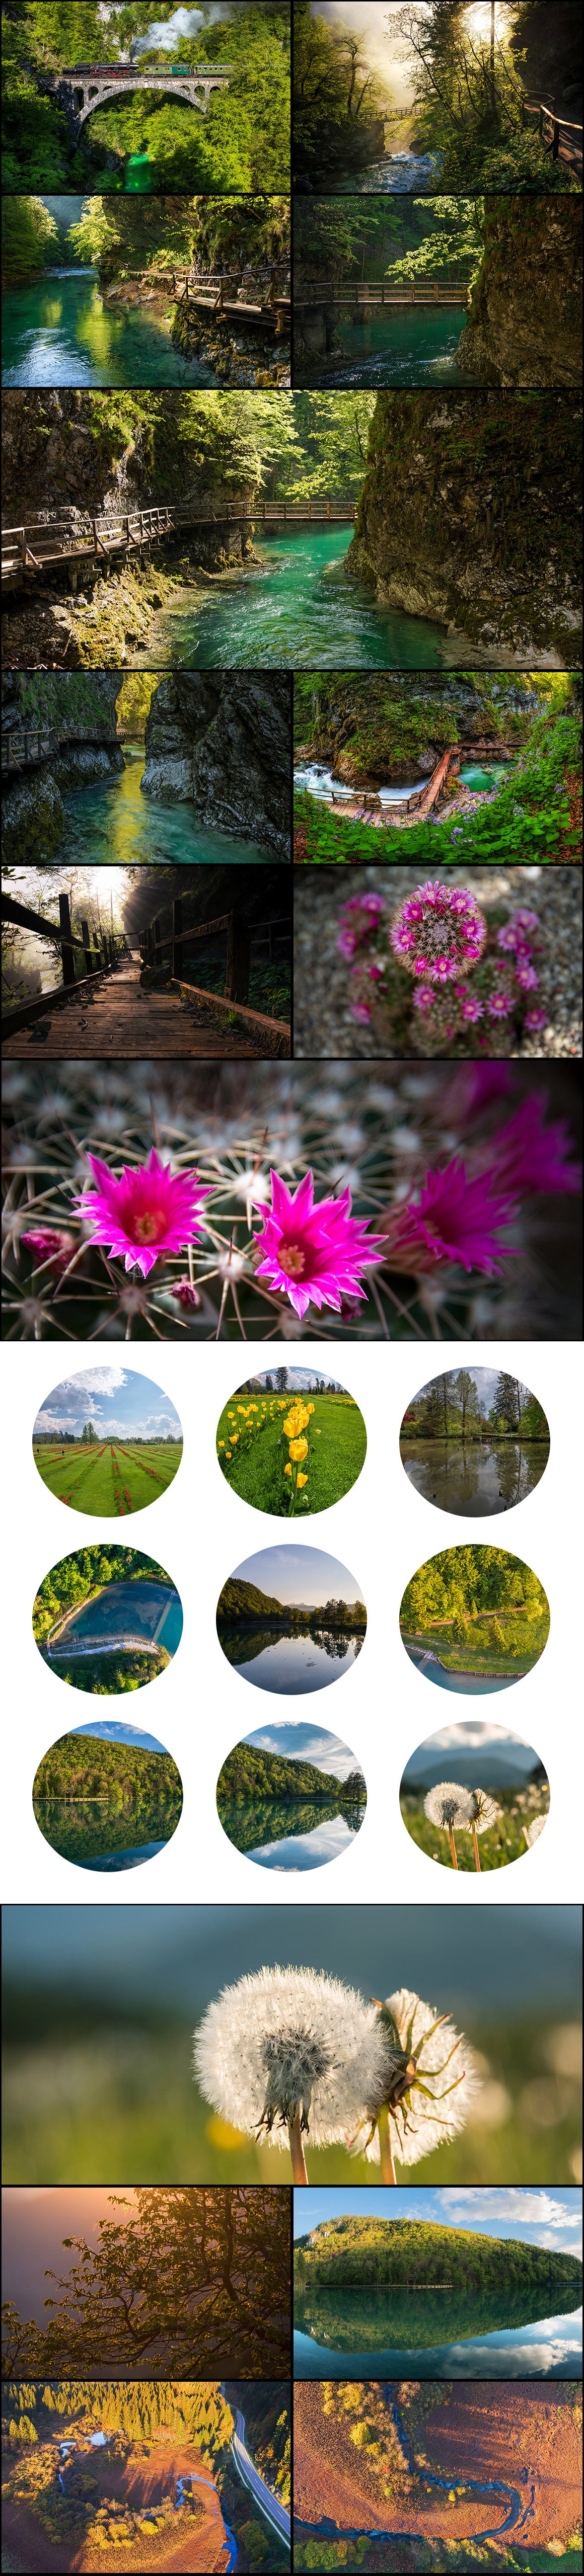 500+ Stock Images. Ultimate Photo Bundle  – $59 - PREVIEW spring